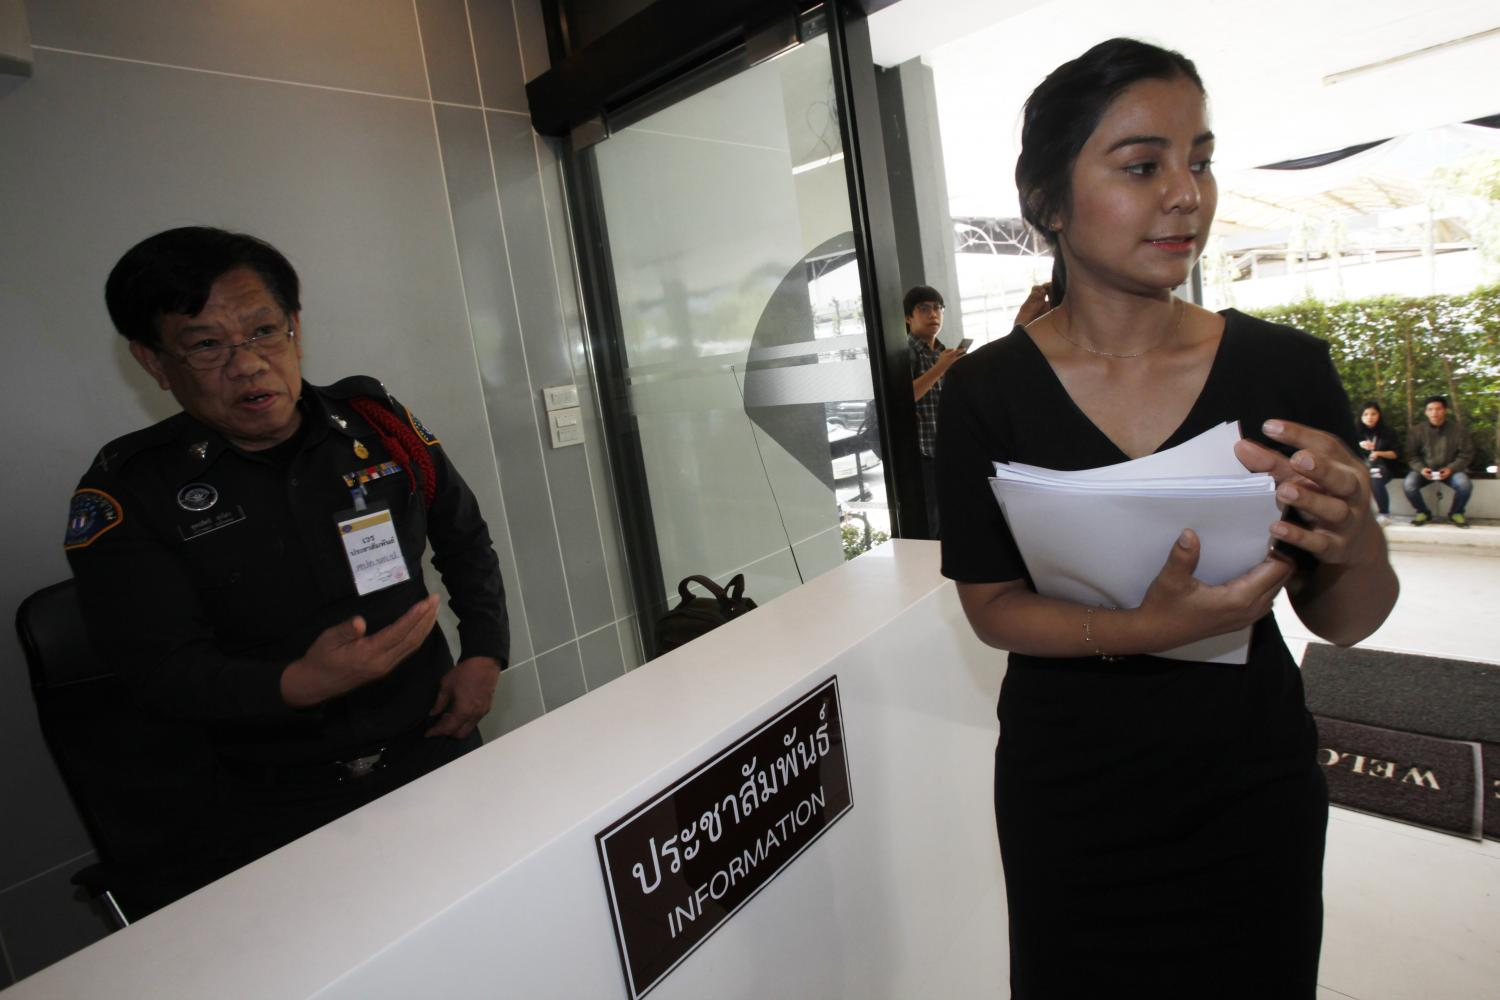 Narisarawan Kaewnopparat prepares to complain to the Crime Suppression Division in the November 2016 file photo, over the death of her uncle, Army Private Wichian Pueksom.